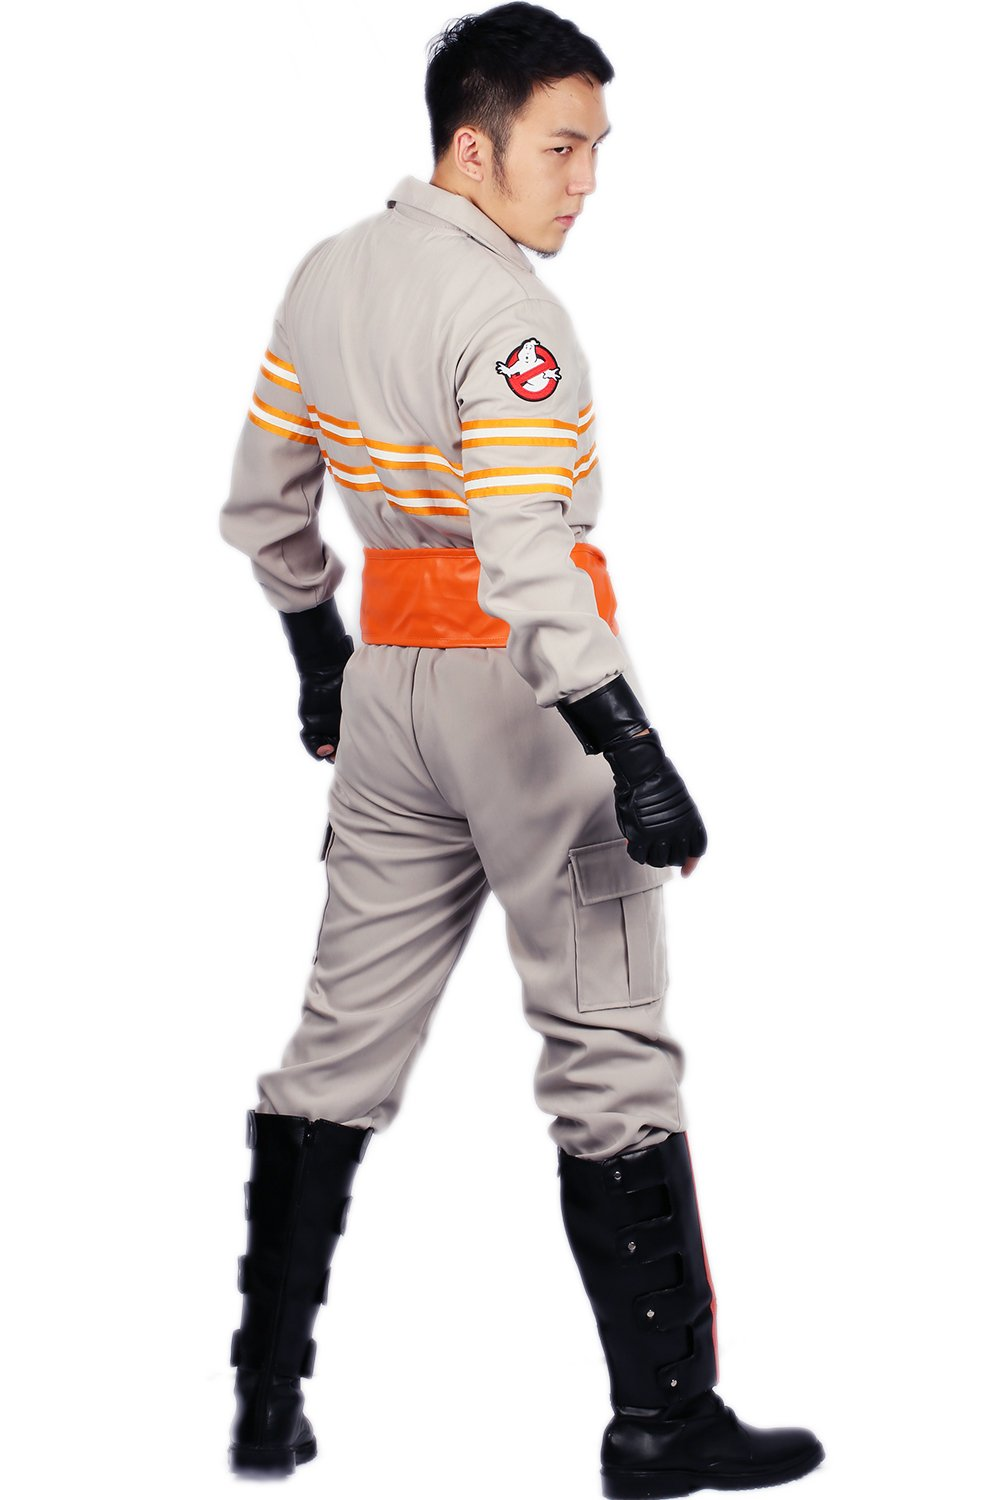 Ghostbusters Costume Deluxe Jumpsuit Embroidery Logo Cotton Halloween Cosplay Xcoser M by xcoser (Image #4)